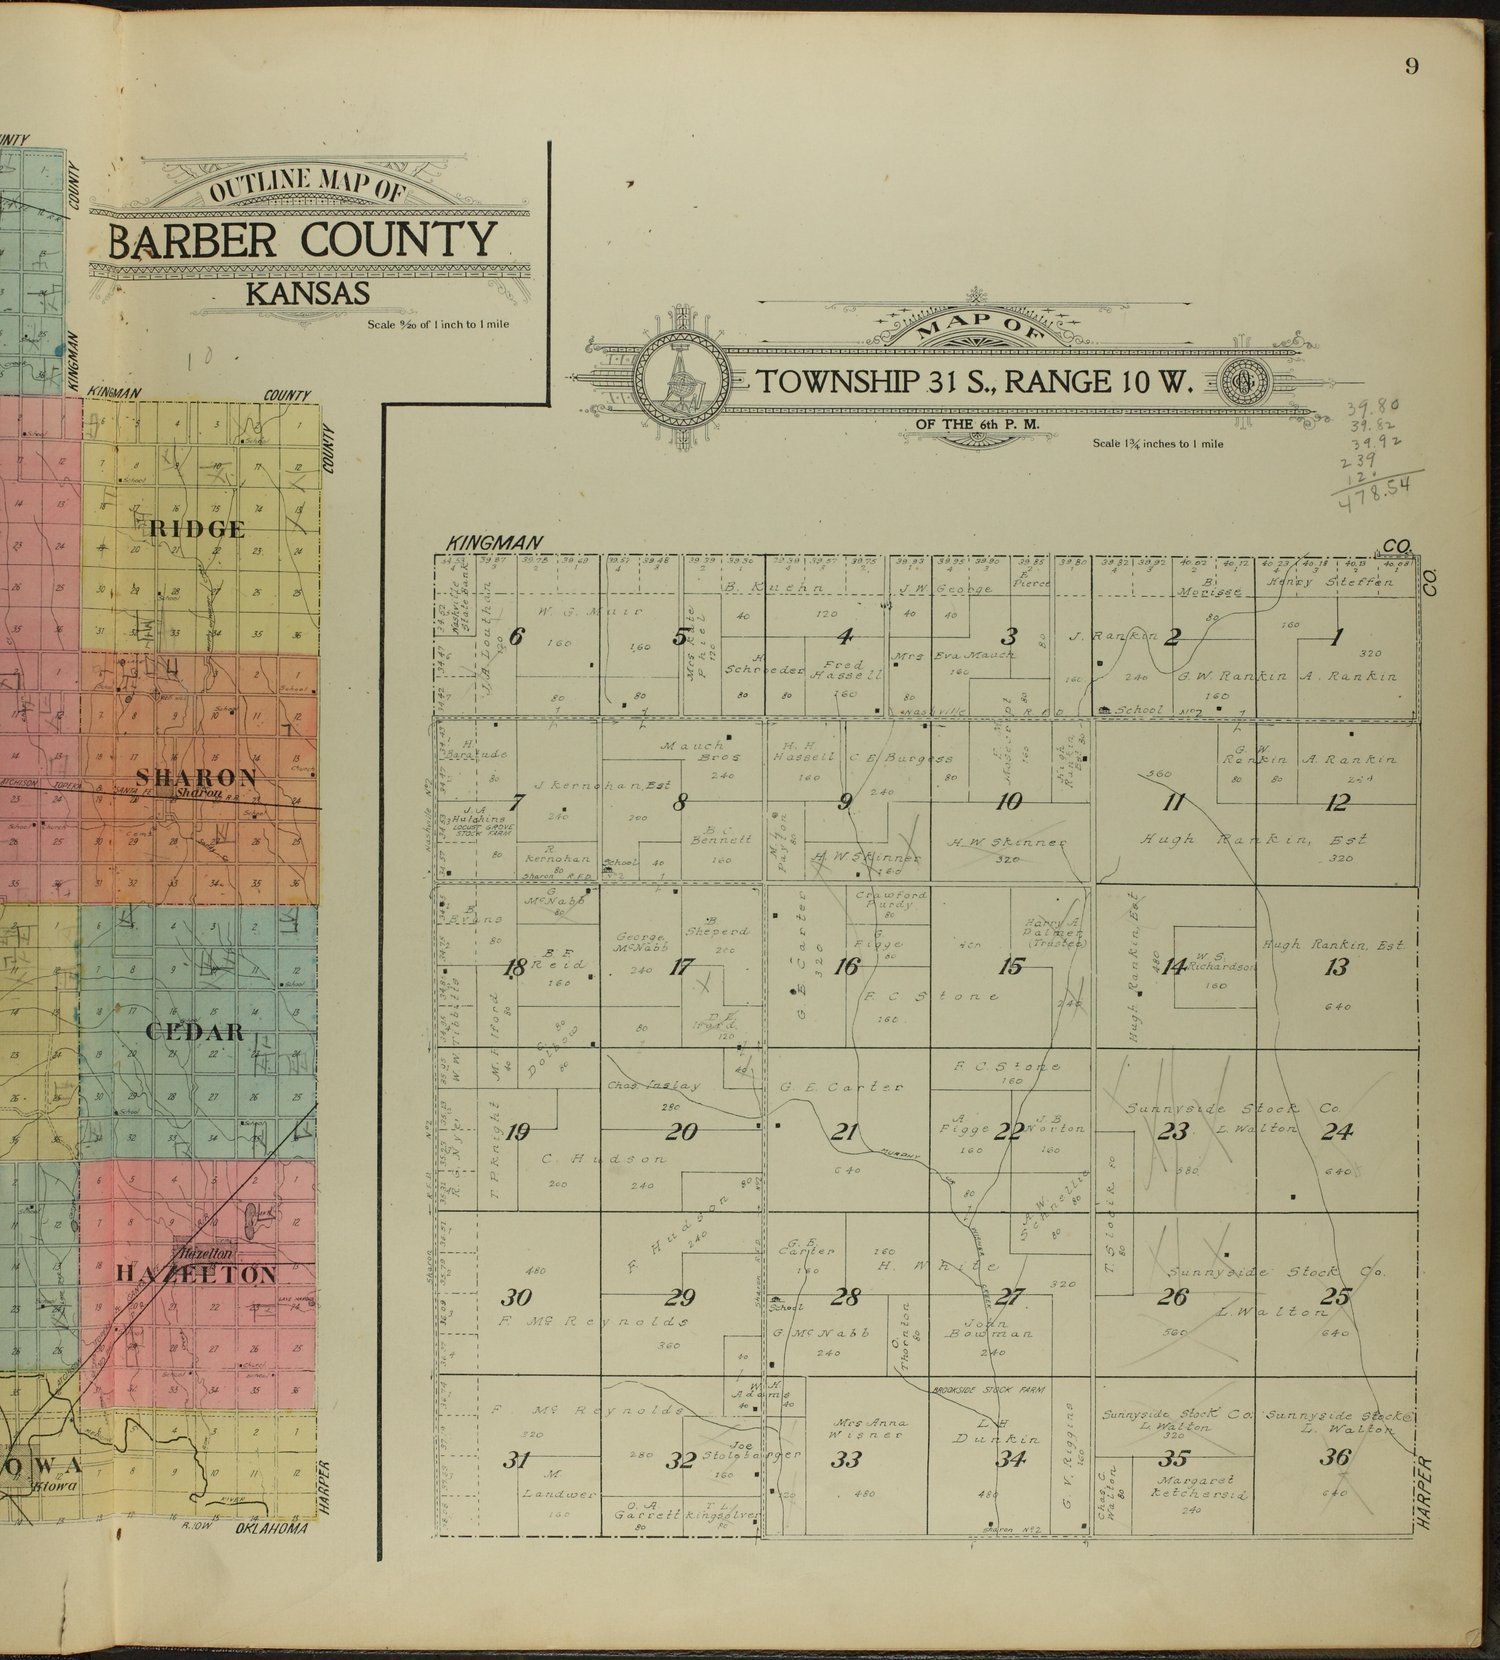 Standard atlas of Barber County, Kansas - 9